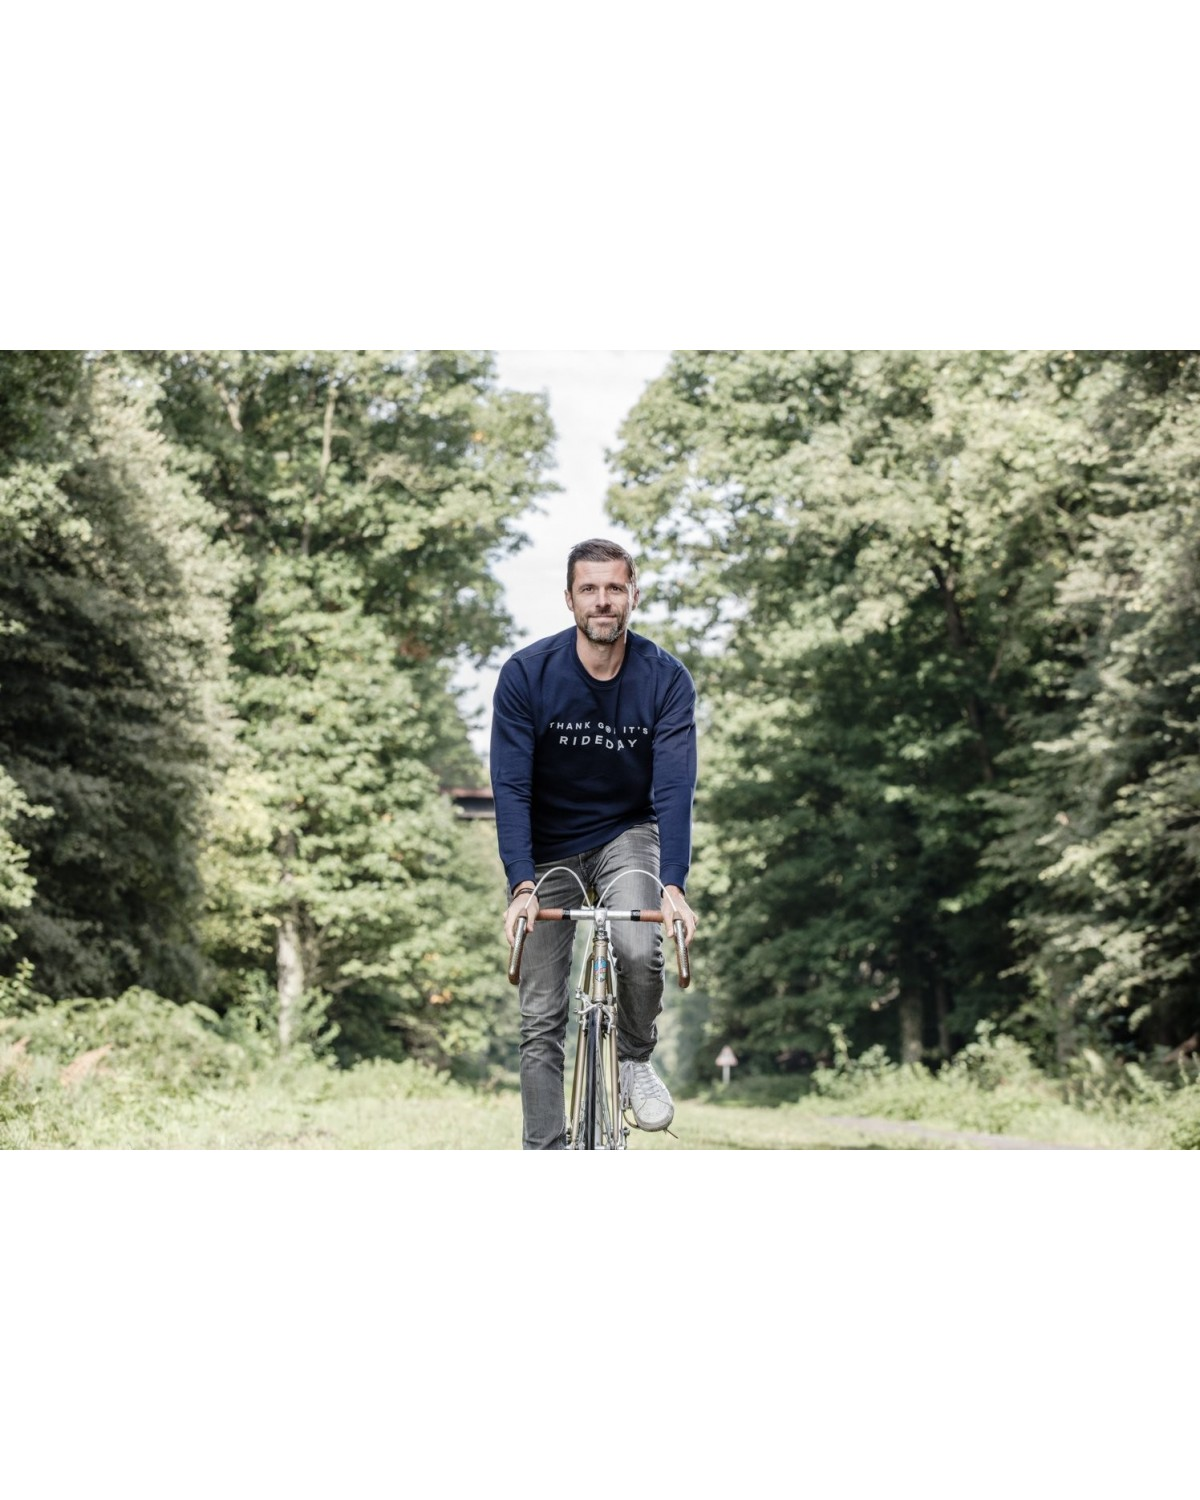 Sweater Rideday Navyblau Cois Cycling